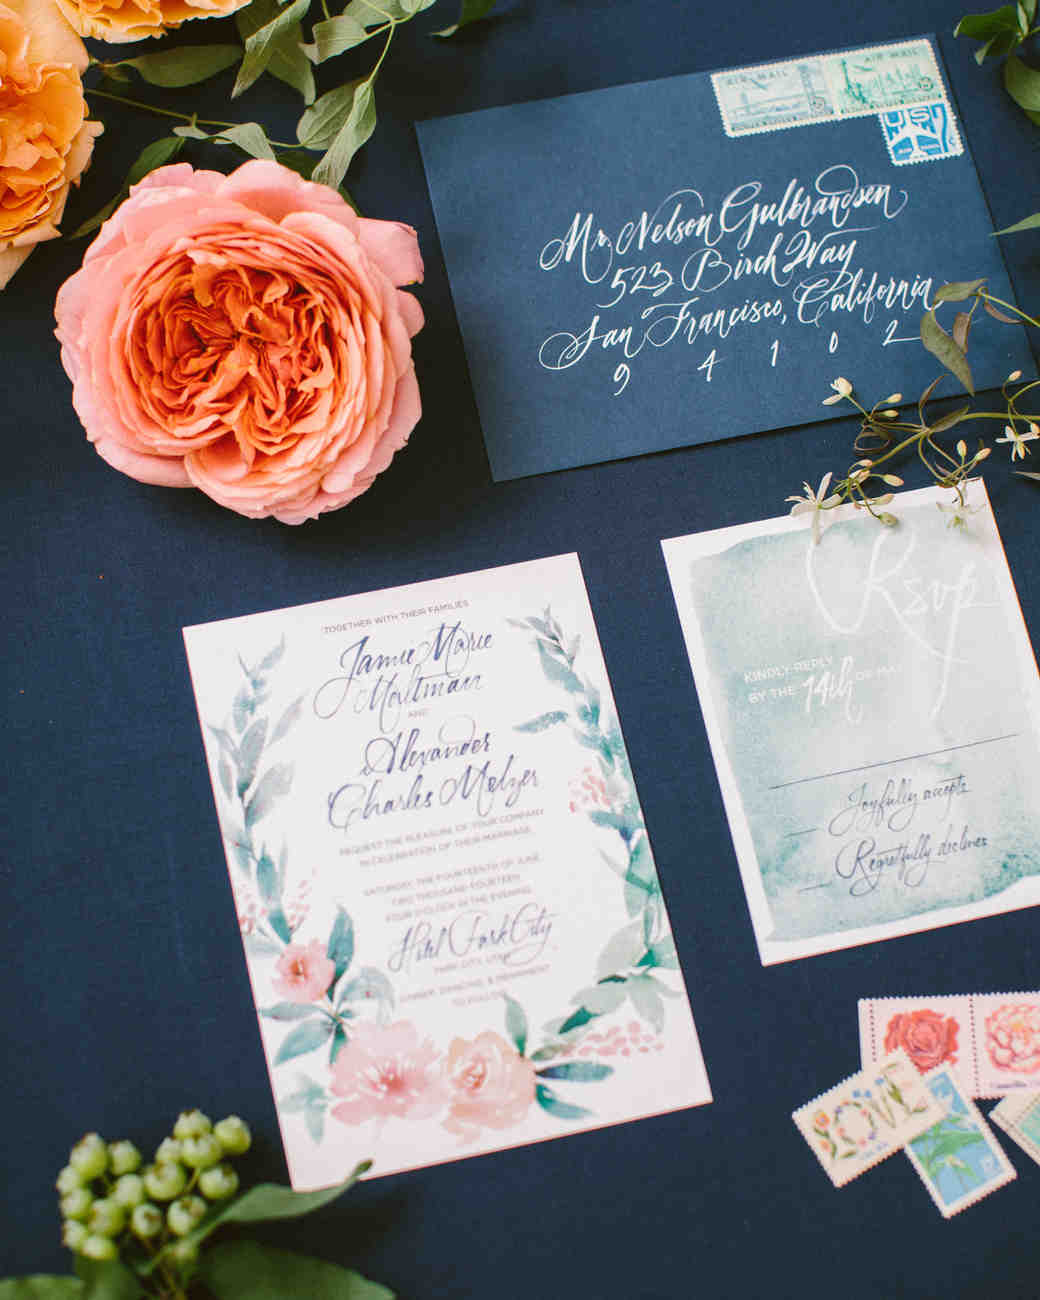 jamie alex wedding invite 127 s111544 1014_vert?itok=9SV5j1CK 10 things you should know before mailing your wedding invitations,Stuffing Wedding Invitations